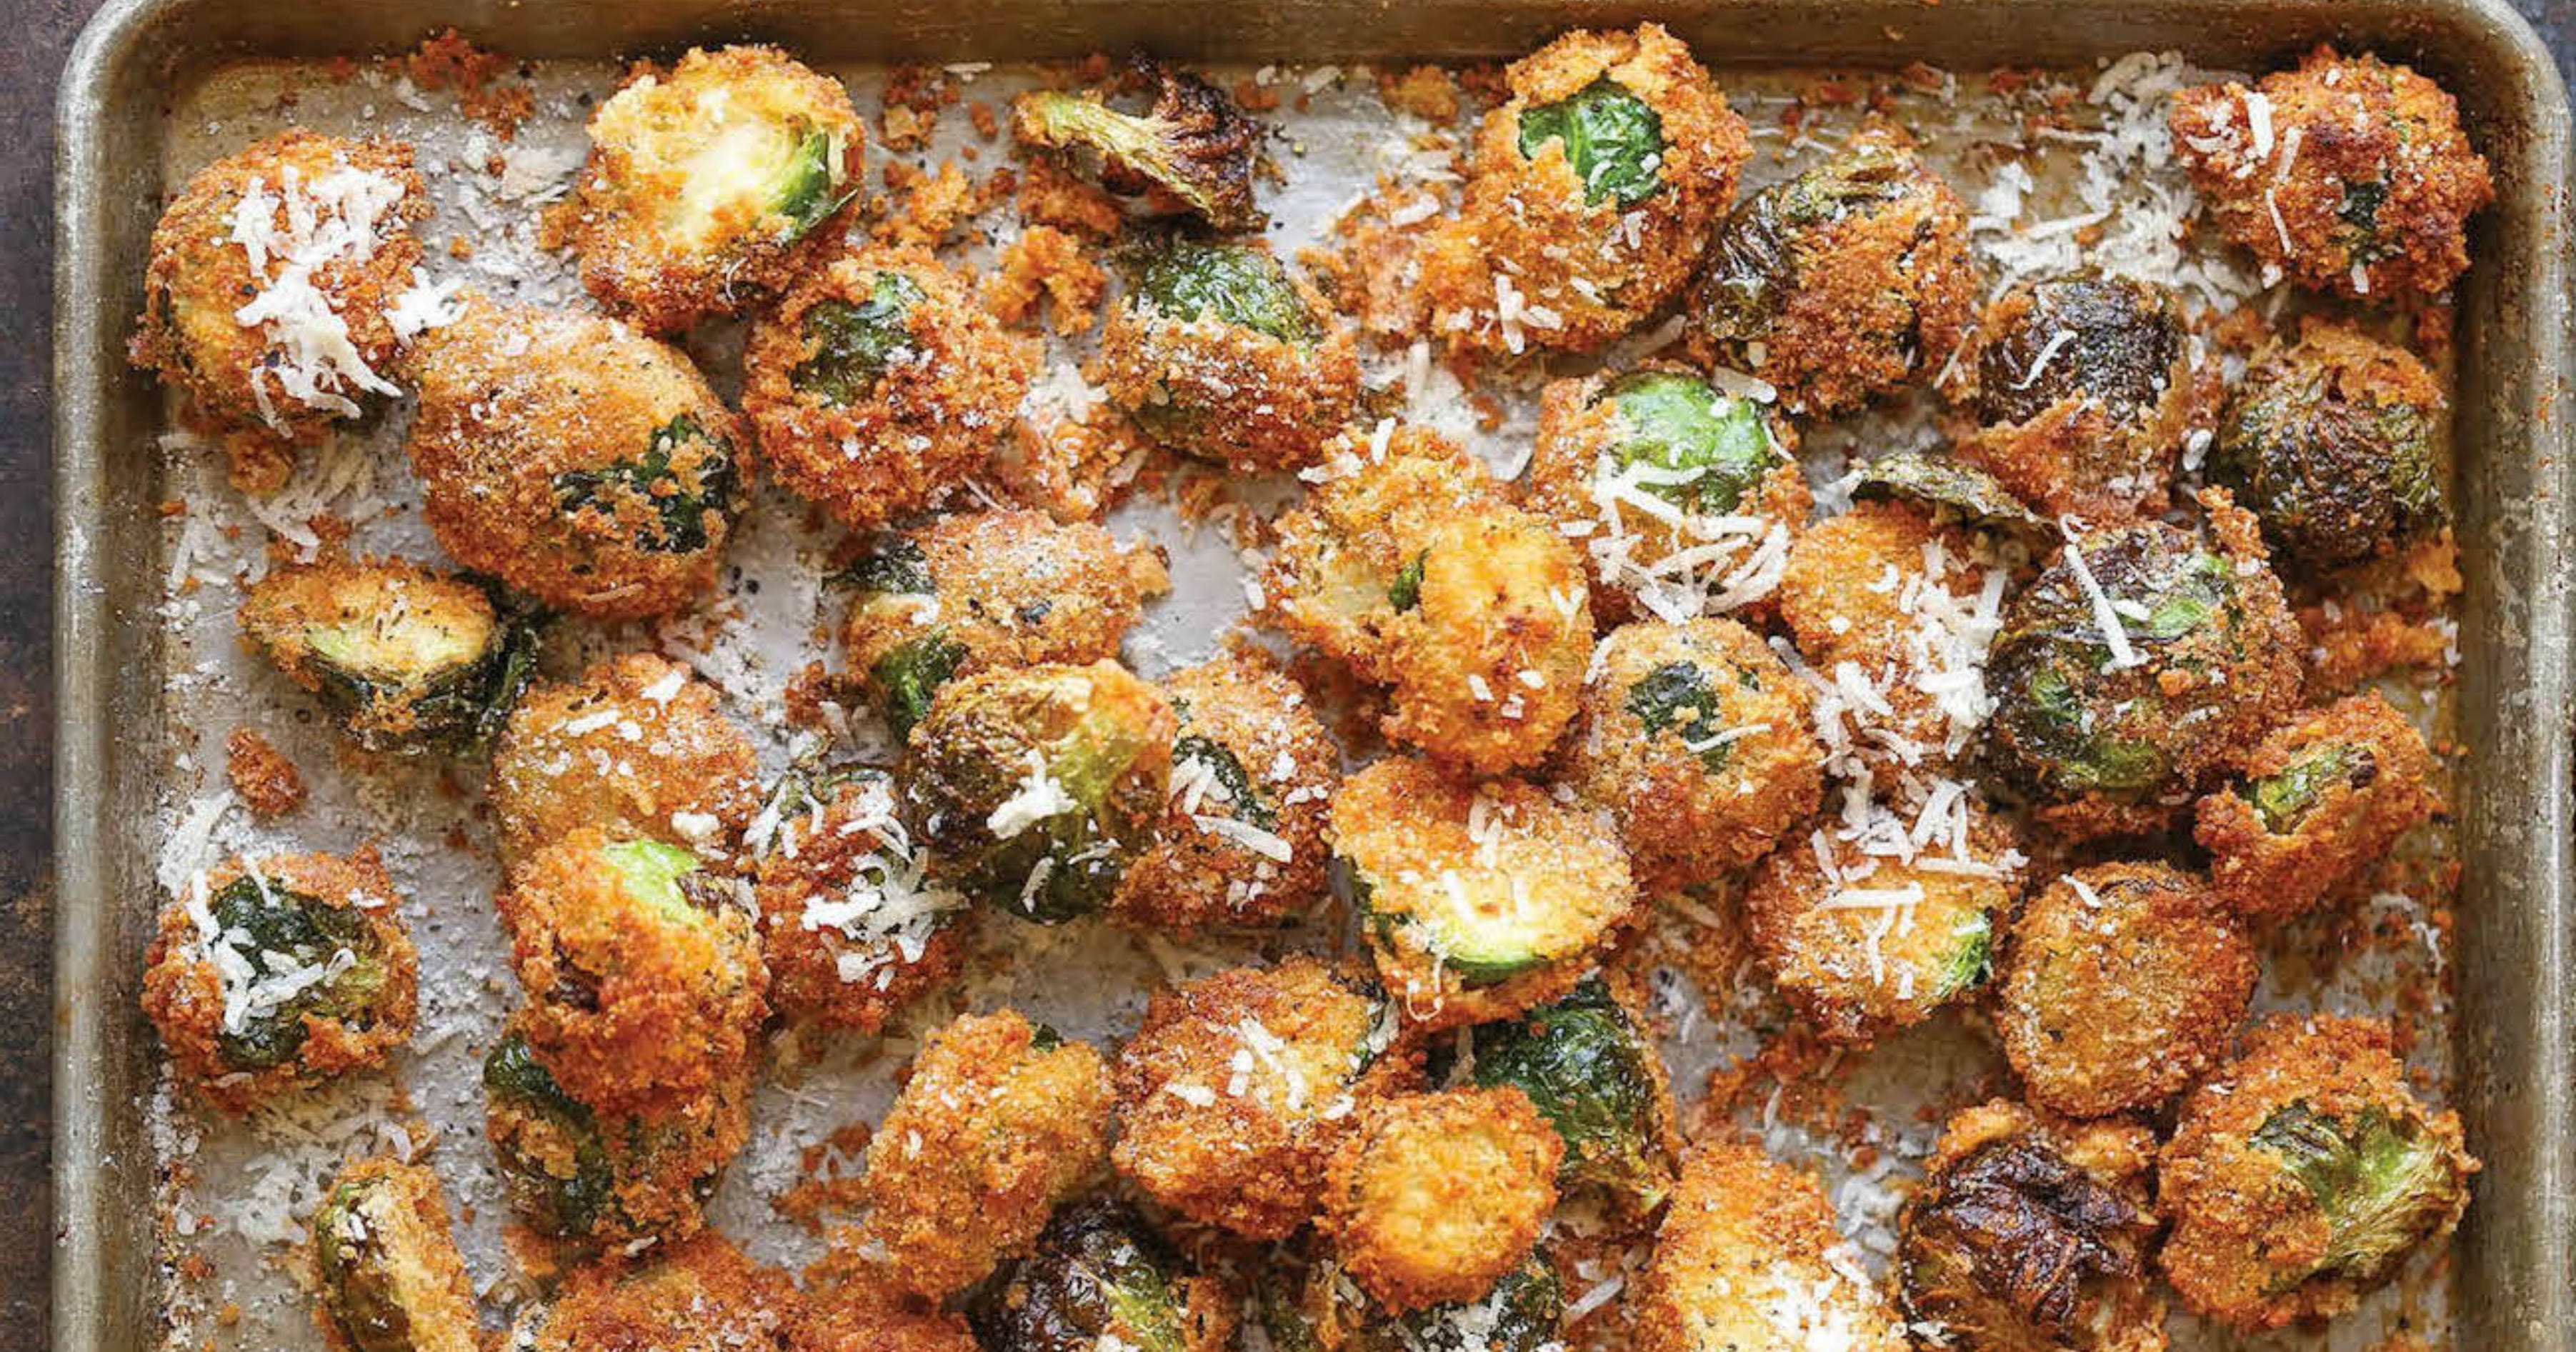 10 Bangin' Brussels Sprout Dishes For Dinner